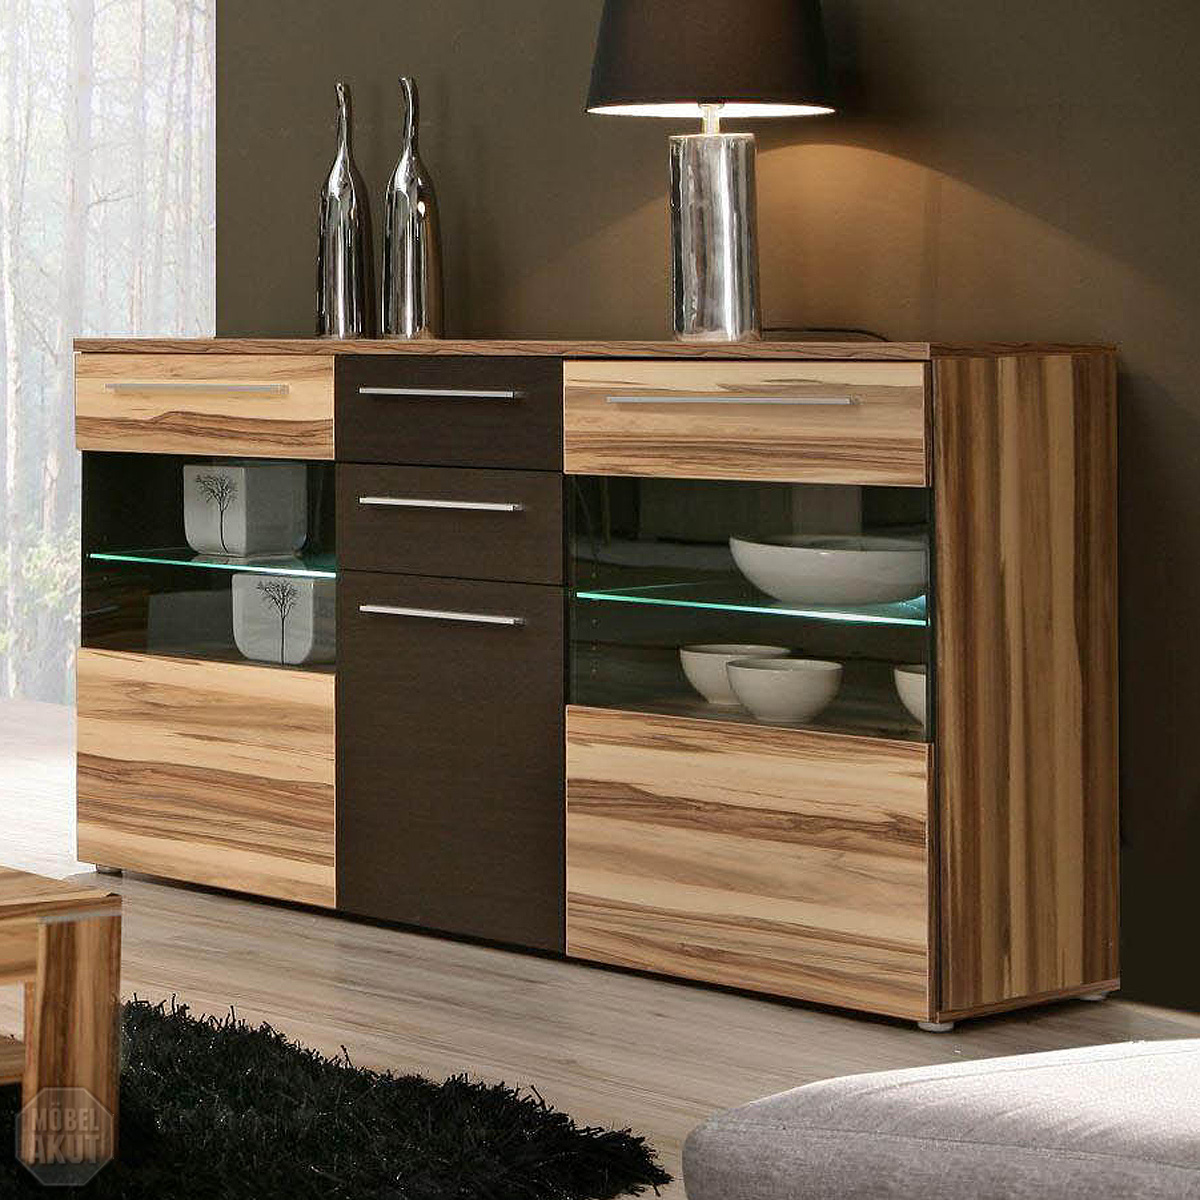 Baltimore Walnuss Kommode Sideboard Fondo Kommode Anrichte In Baltimore Walnuss